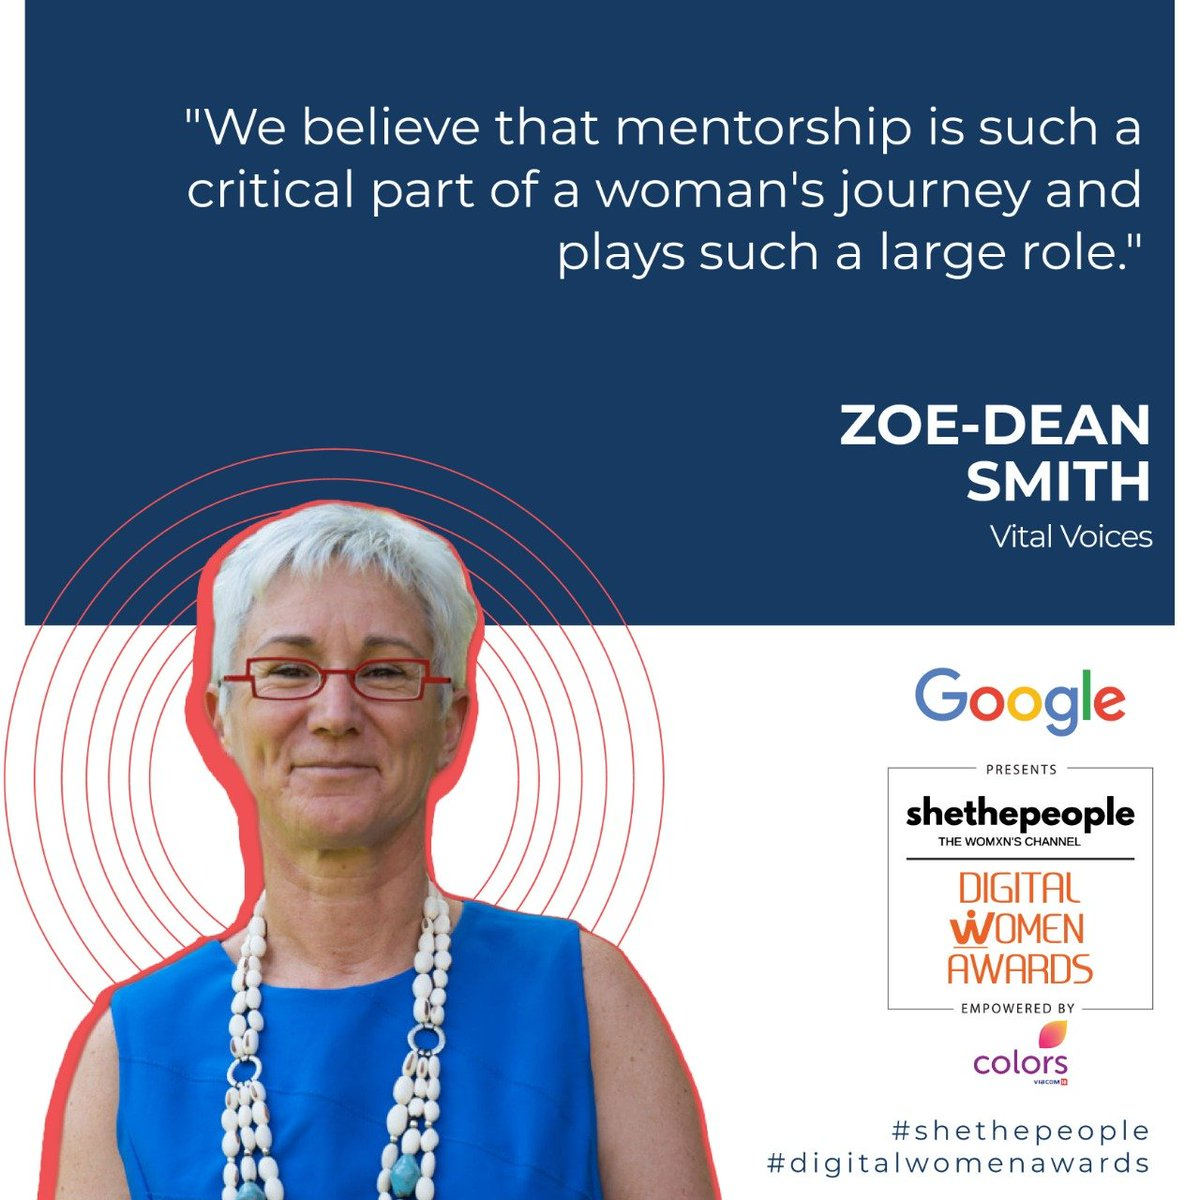 @ZoeDeanSmith at #DigitalWomenAwards talked about the role of mentorship in empowering women